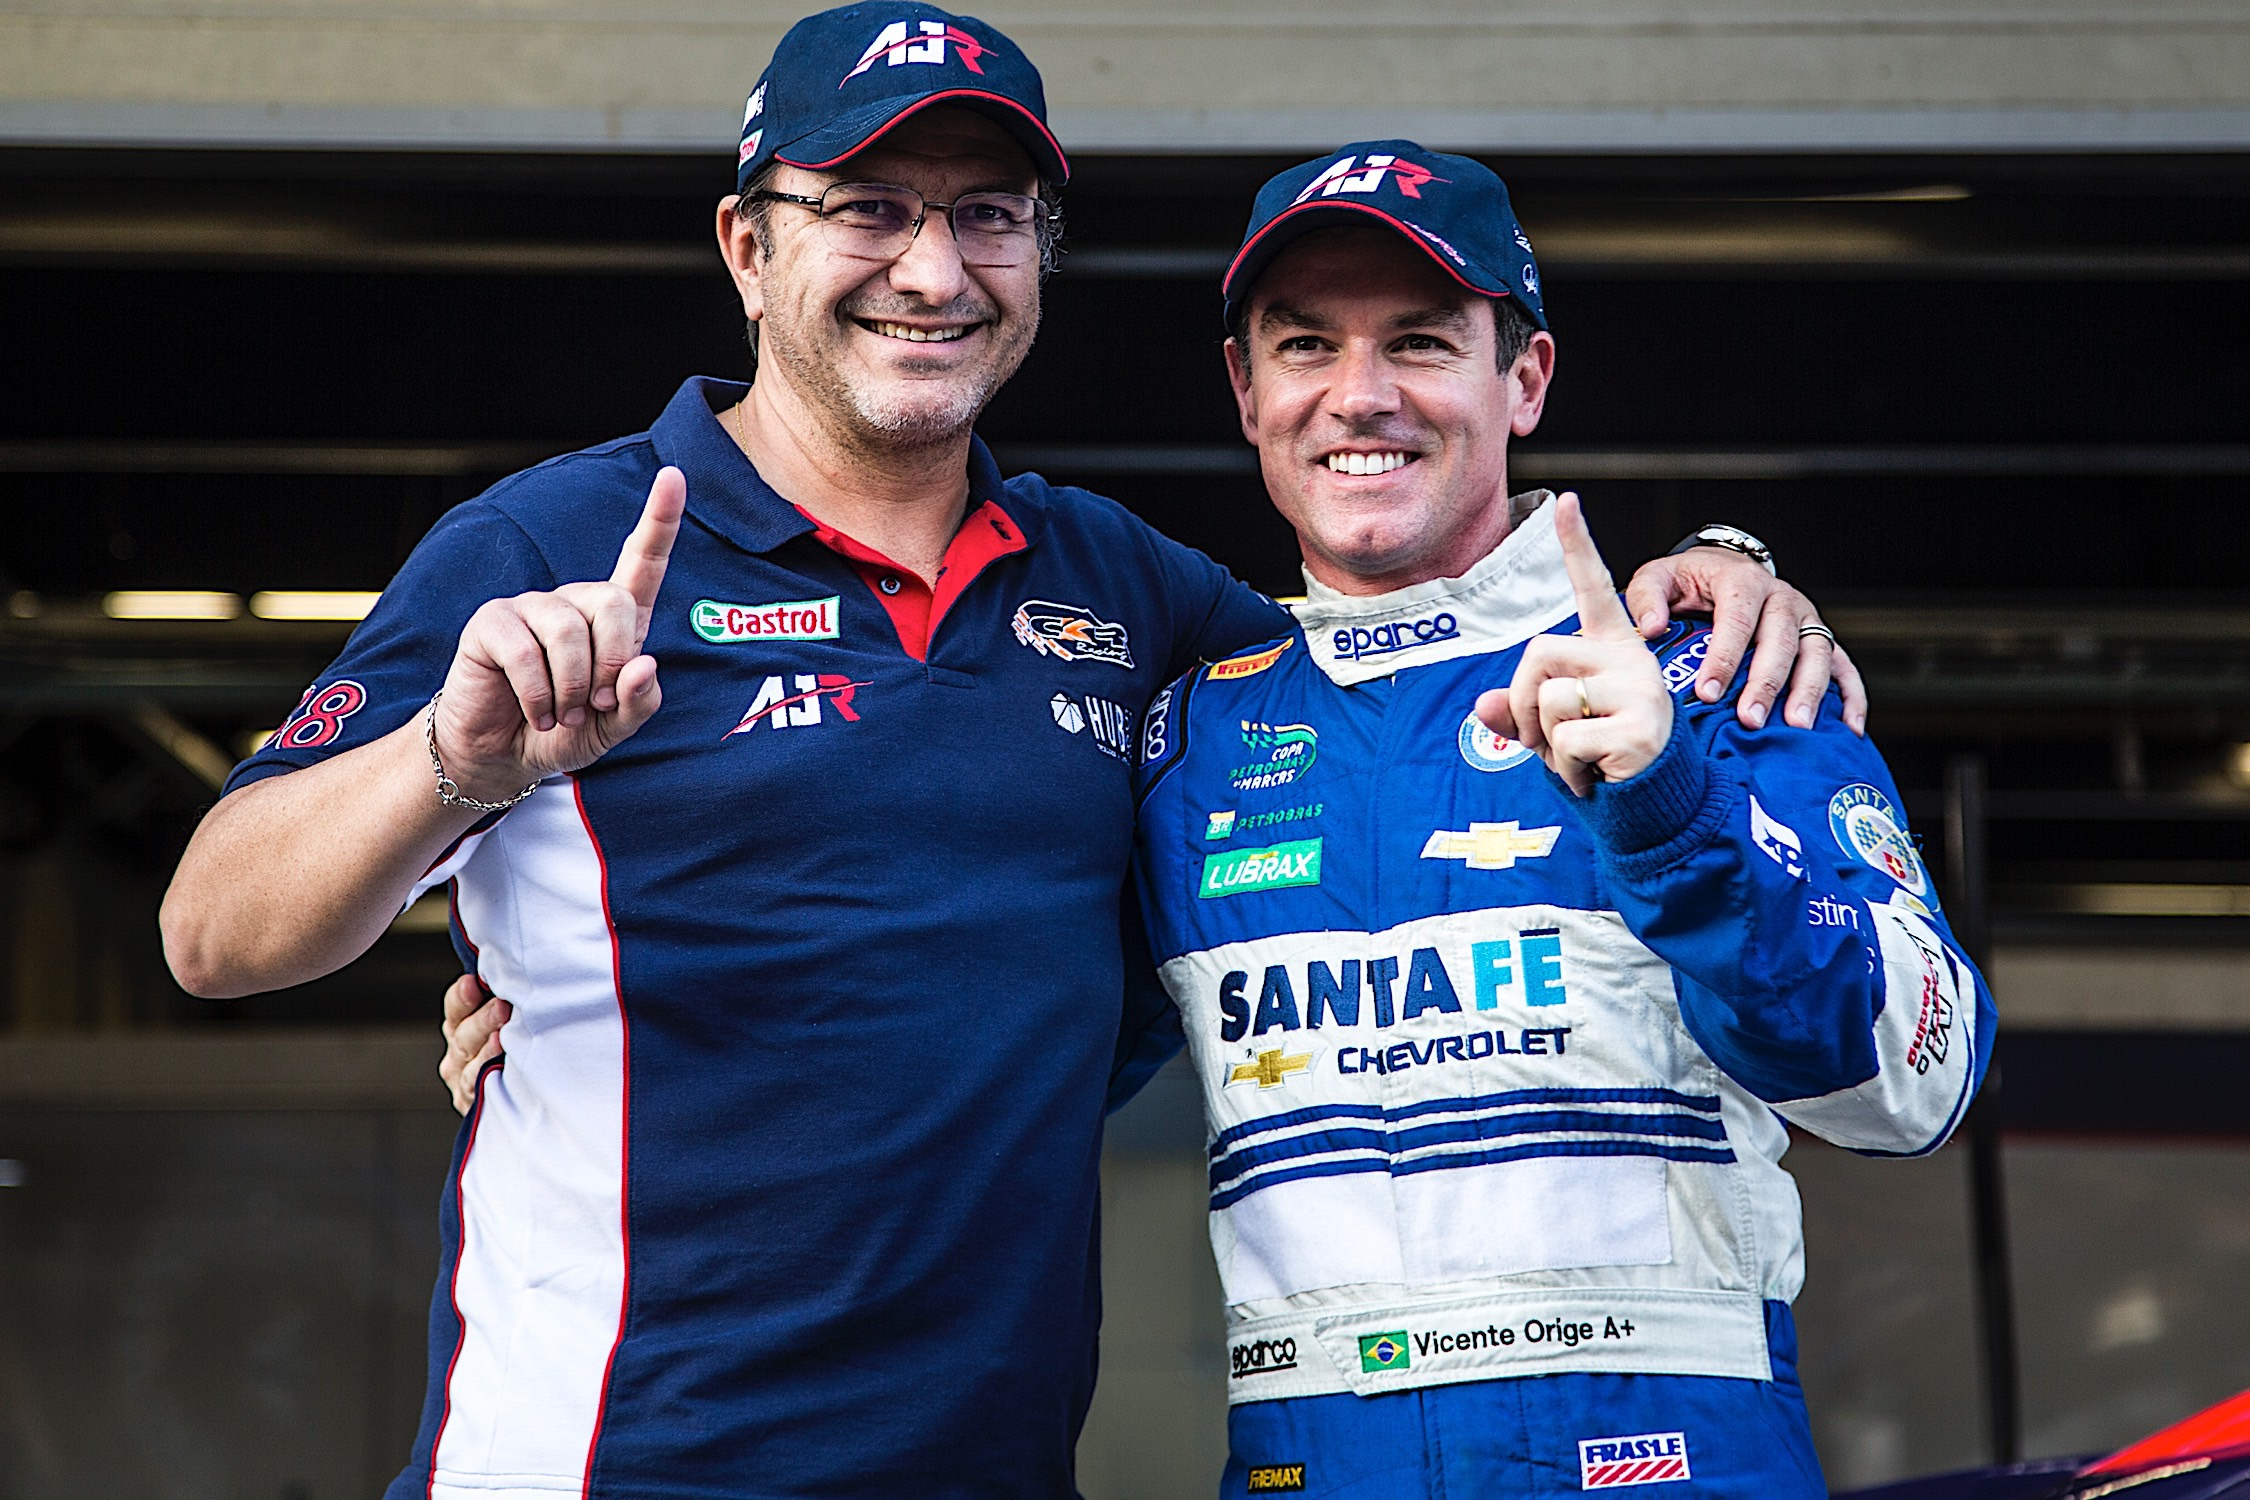 Photo of Endurance – AJR #88 com Vicente Orige emplaca pole em Interlagos na CHEVROLET ABSOLUTA 500